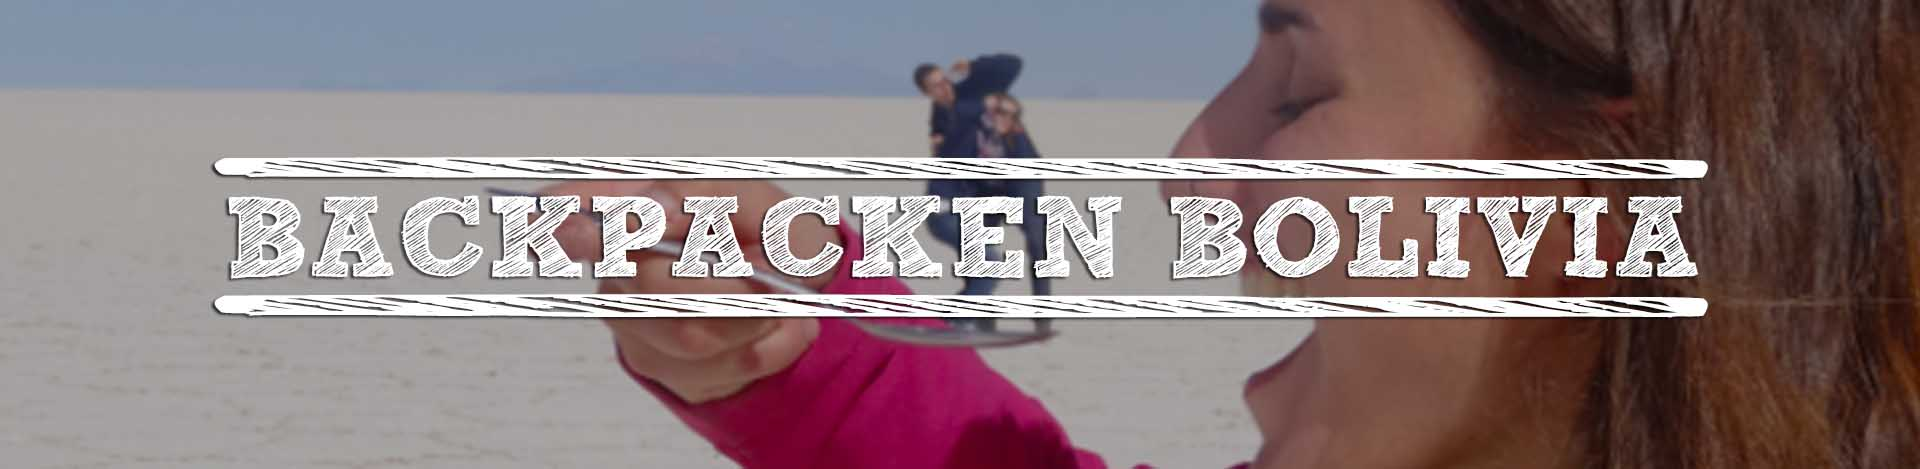 Backpacken Bolivia-header2